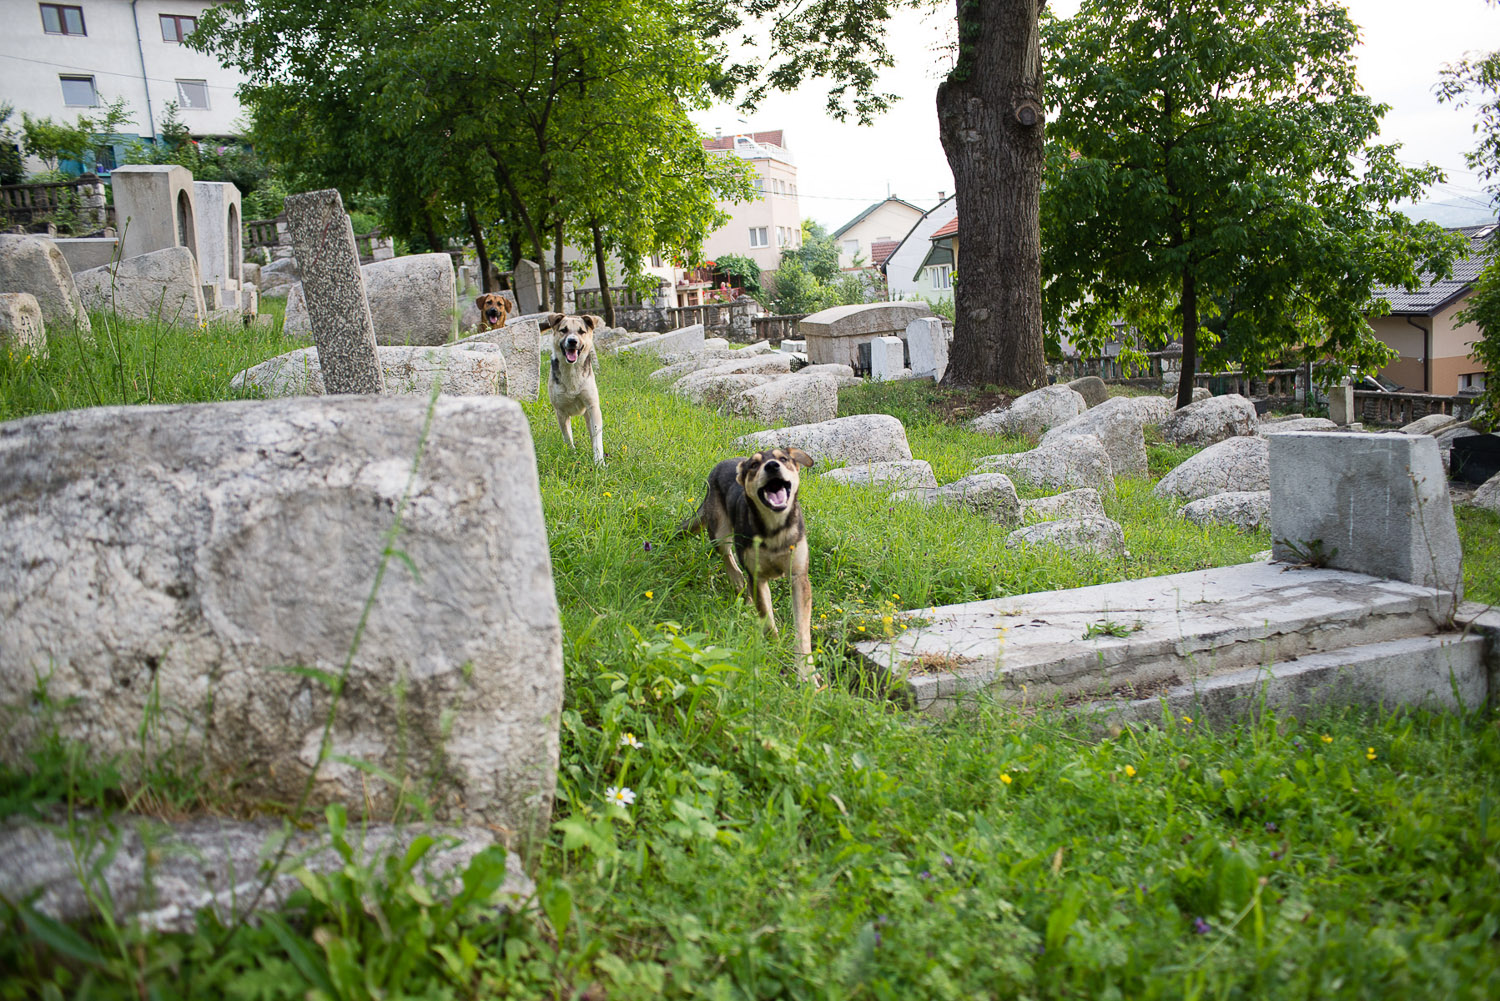 The Jewish Cemetery in Sarajevo is the second largest in Europe, after that of Prague. It was opened in 1630 and closed to burial in 1966. During the siege of Sarajevo, the cemetery was on the front lines and was used as an artillery position for Bosnian Serbs.